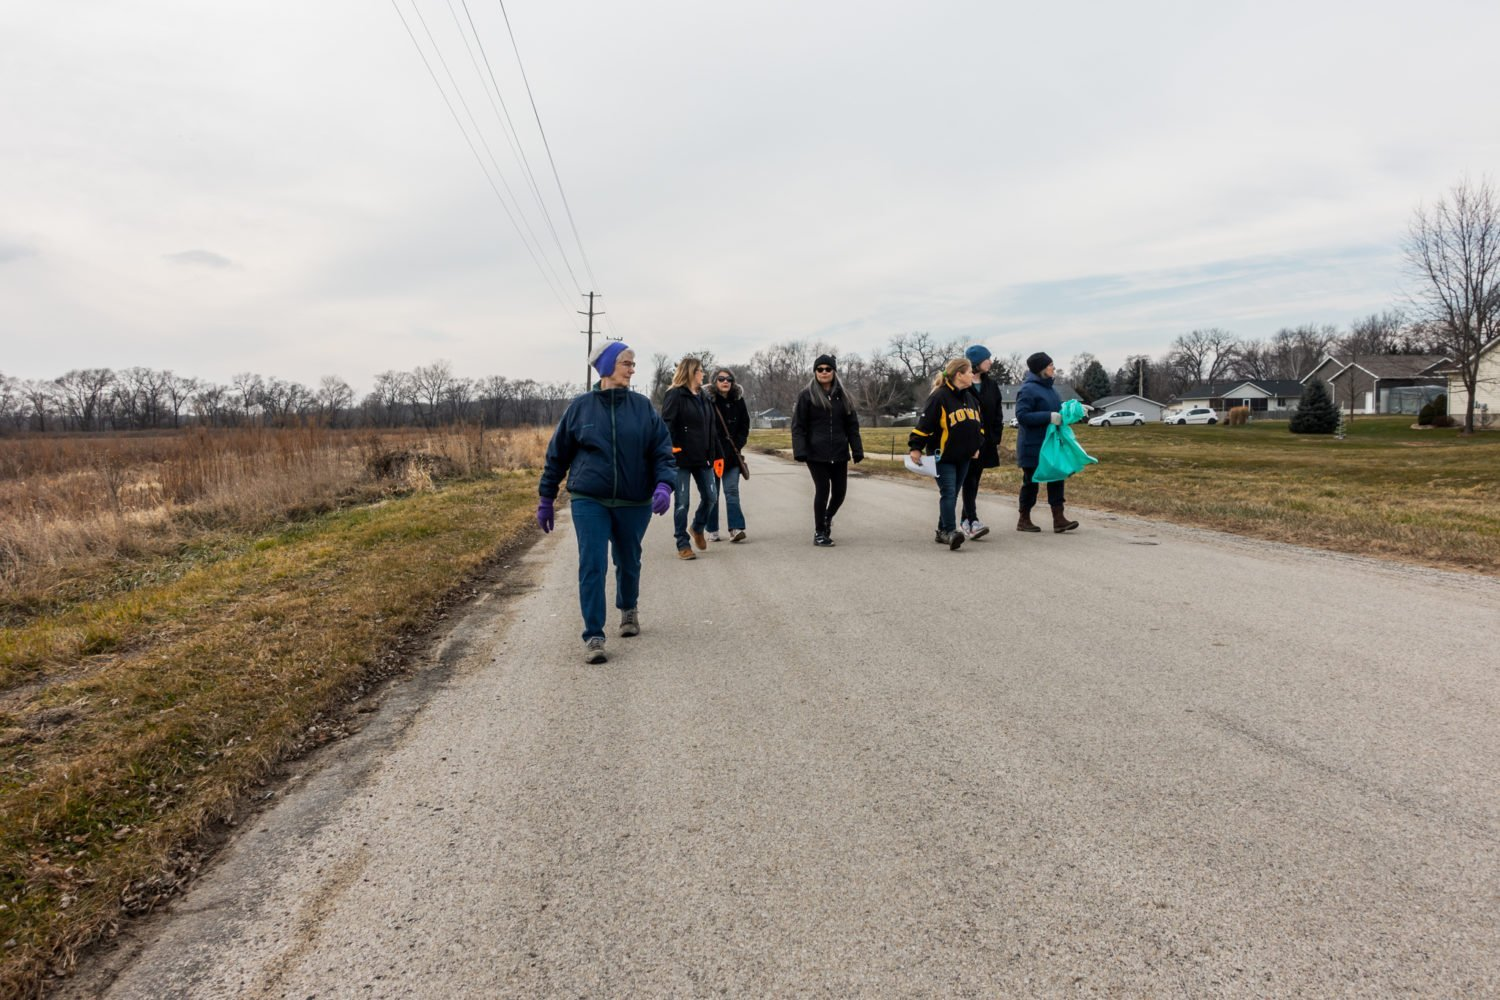 Walk from Rompot to the Prairie Park Fishery to see what is at stake in the proposed rezoning for an industrial rail yard